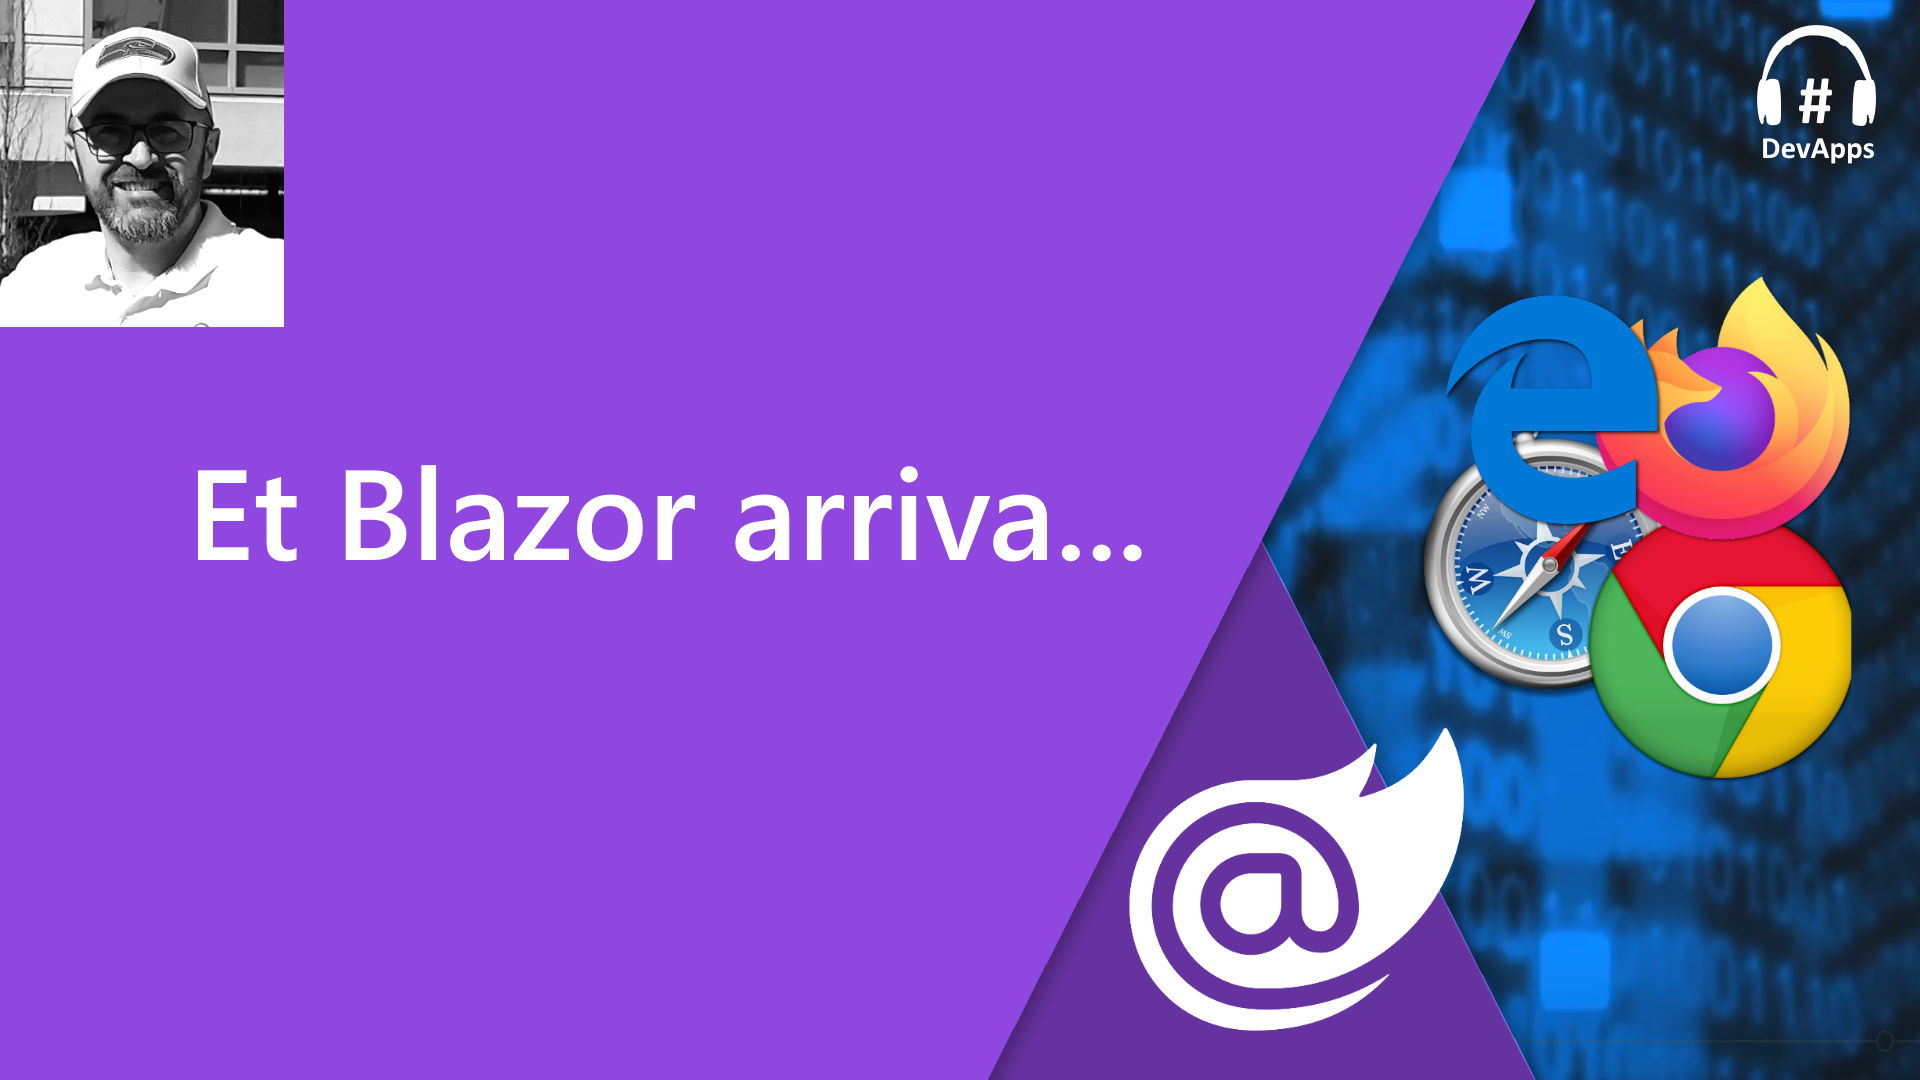 Blazor, introduction